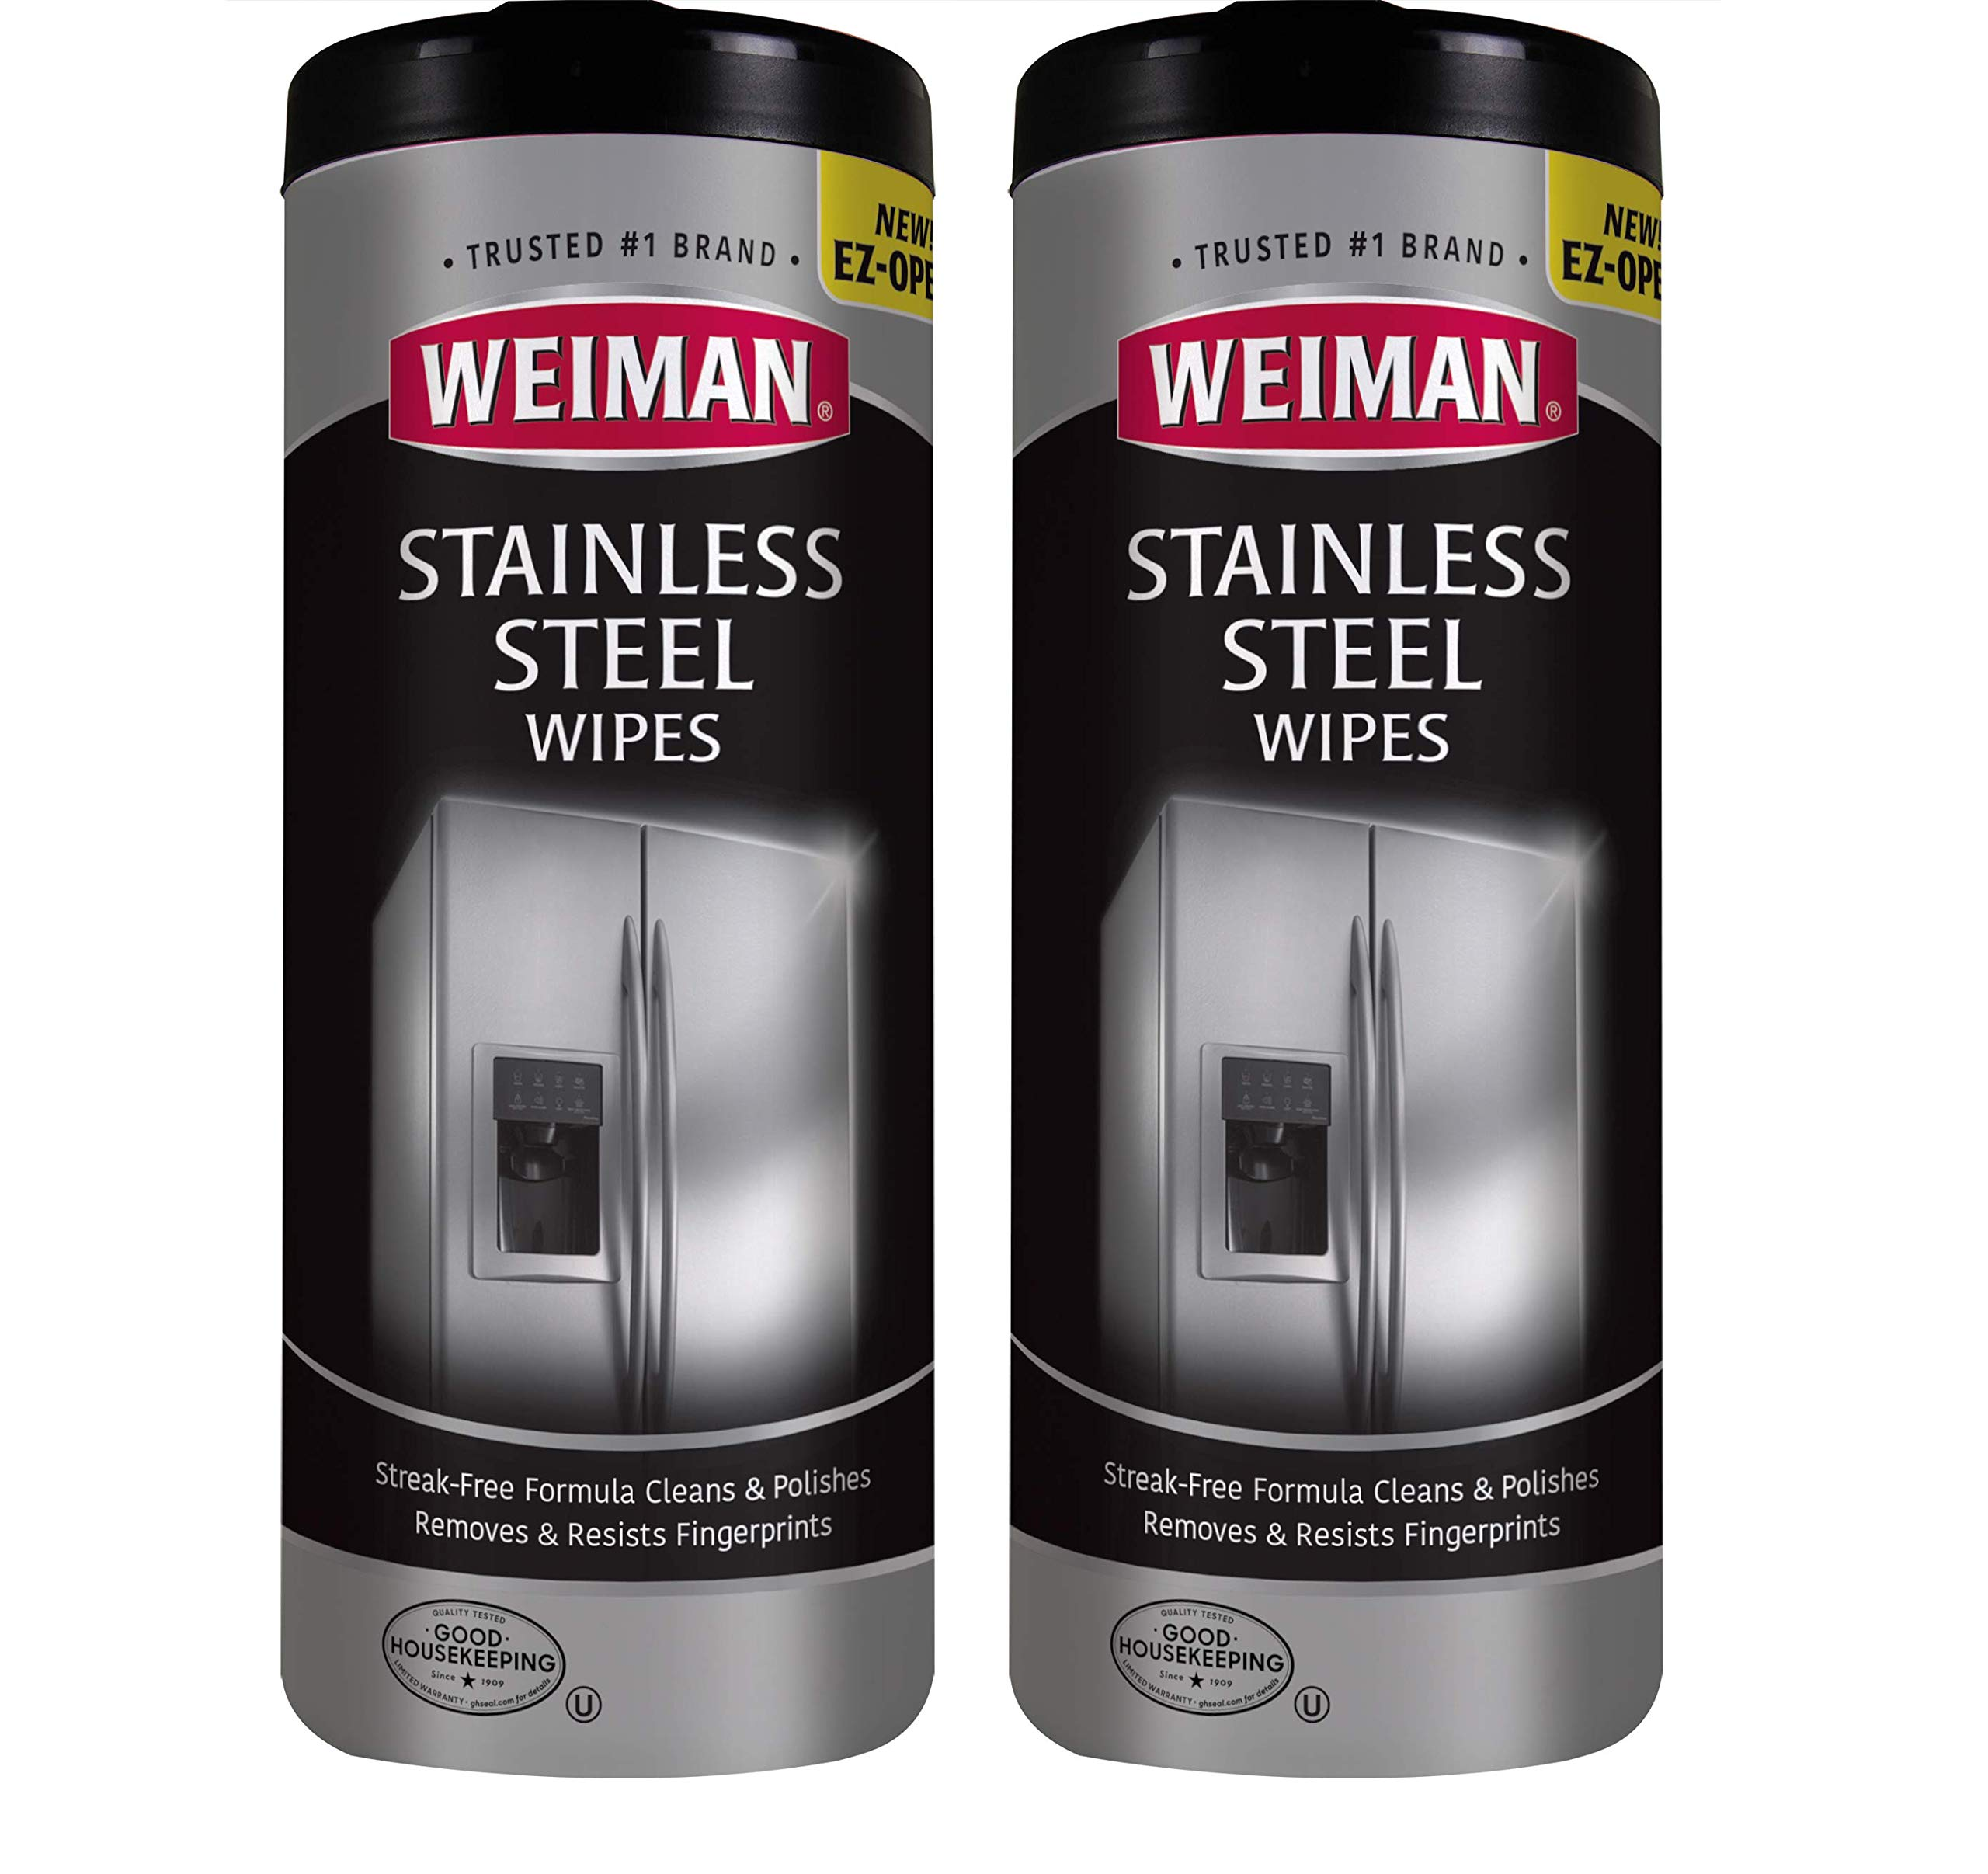 Weiman Stainless Steel Cleaner Wipes (2 Pack) Fingerprint Resistant, Removes Residue, Water Marks and Grease from Appliances - Works Great on Refrigerators, Dishwashers, Ovens, and Grills by Weiman